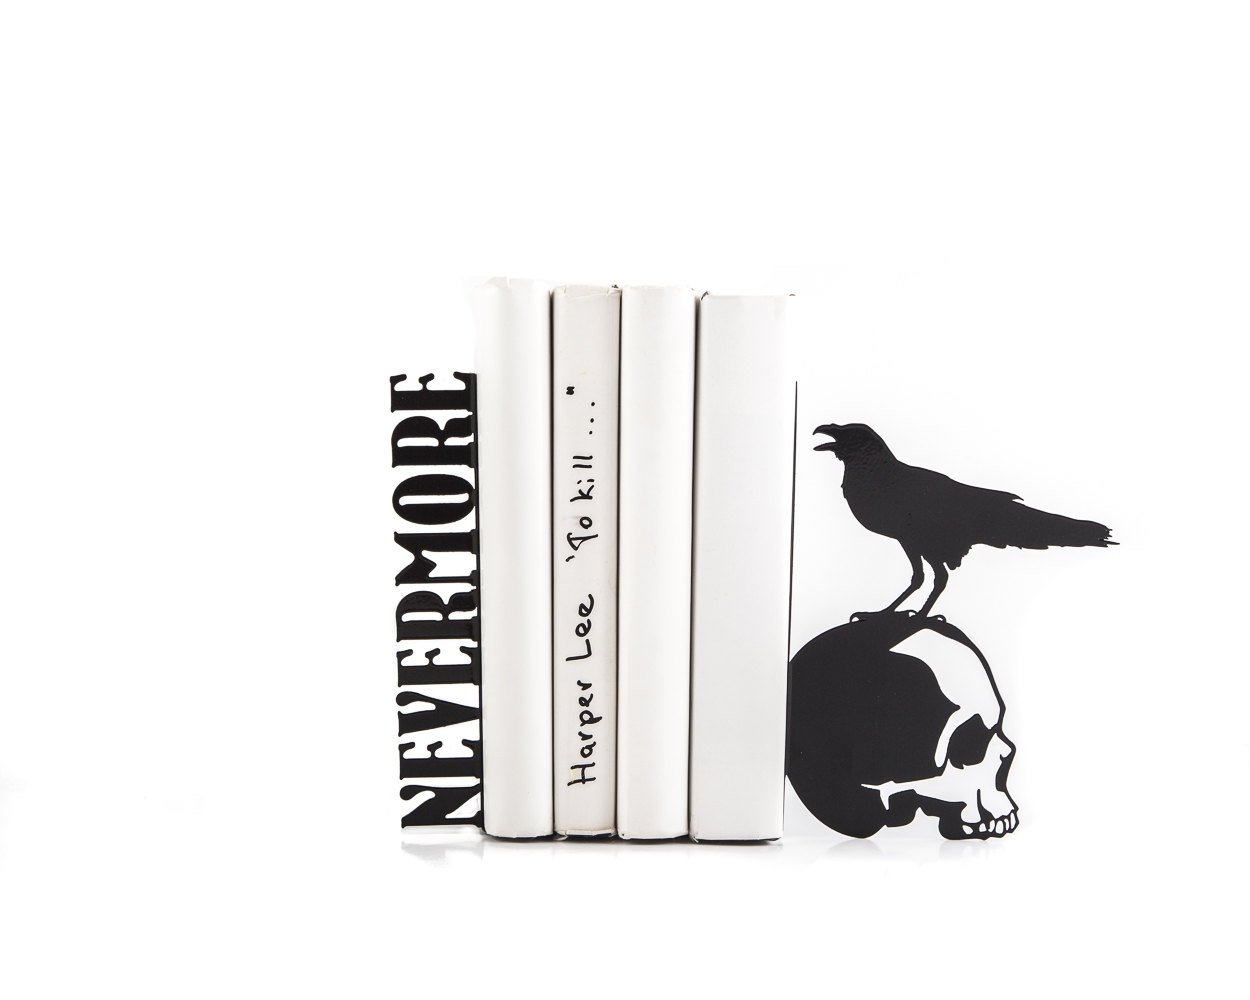 Metal Bookends Nevermore // Raven on a skull // EDGAR ALLAN POE by Atelier Article - Design Atelier Article